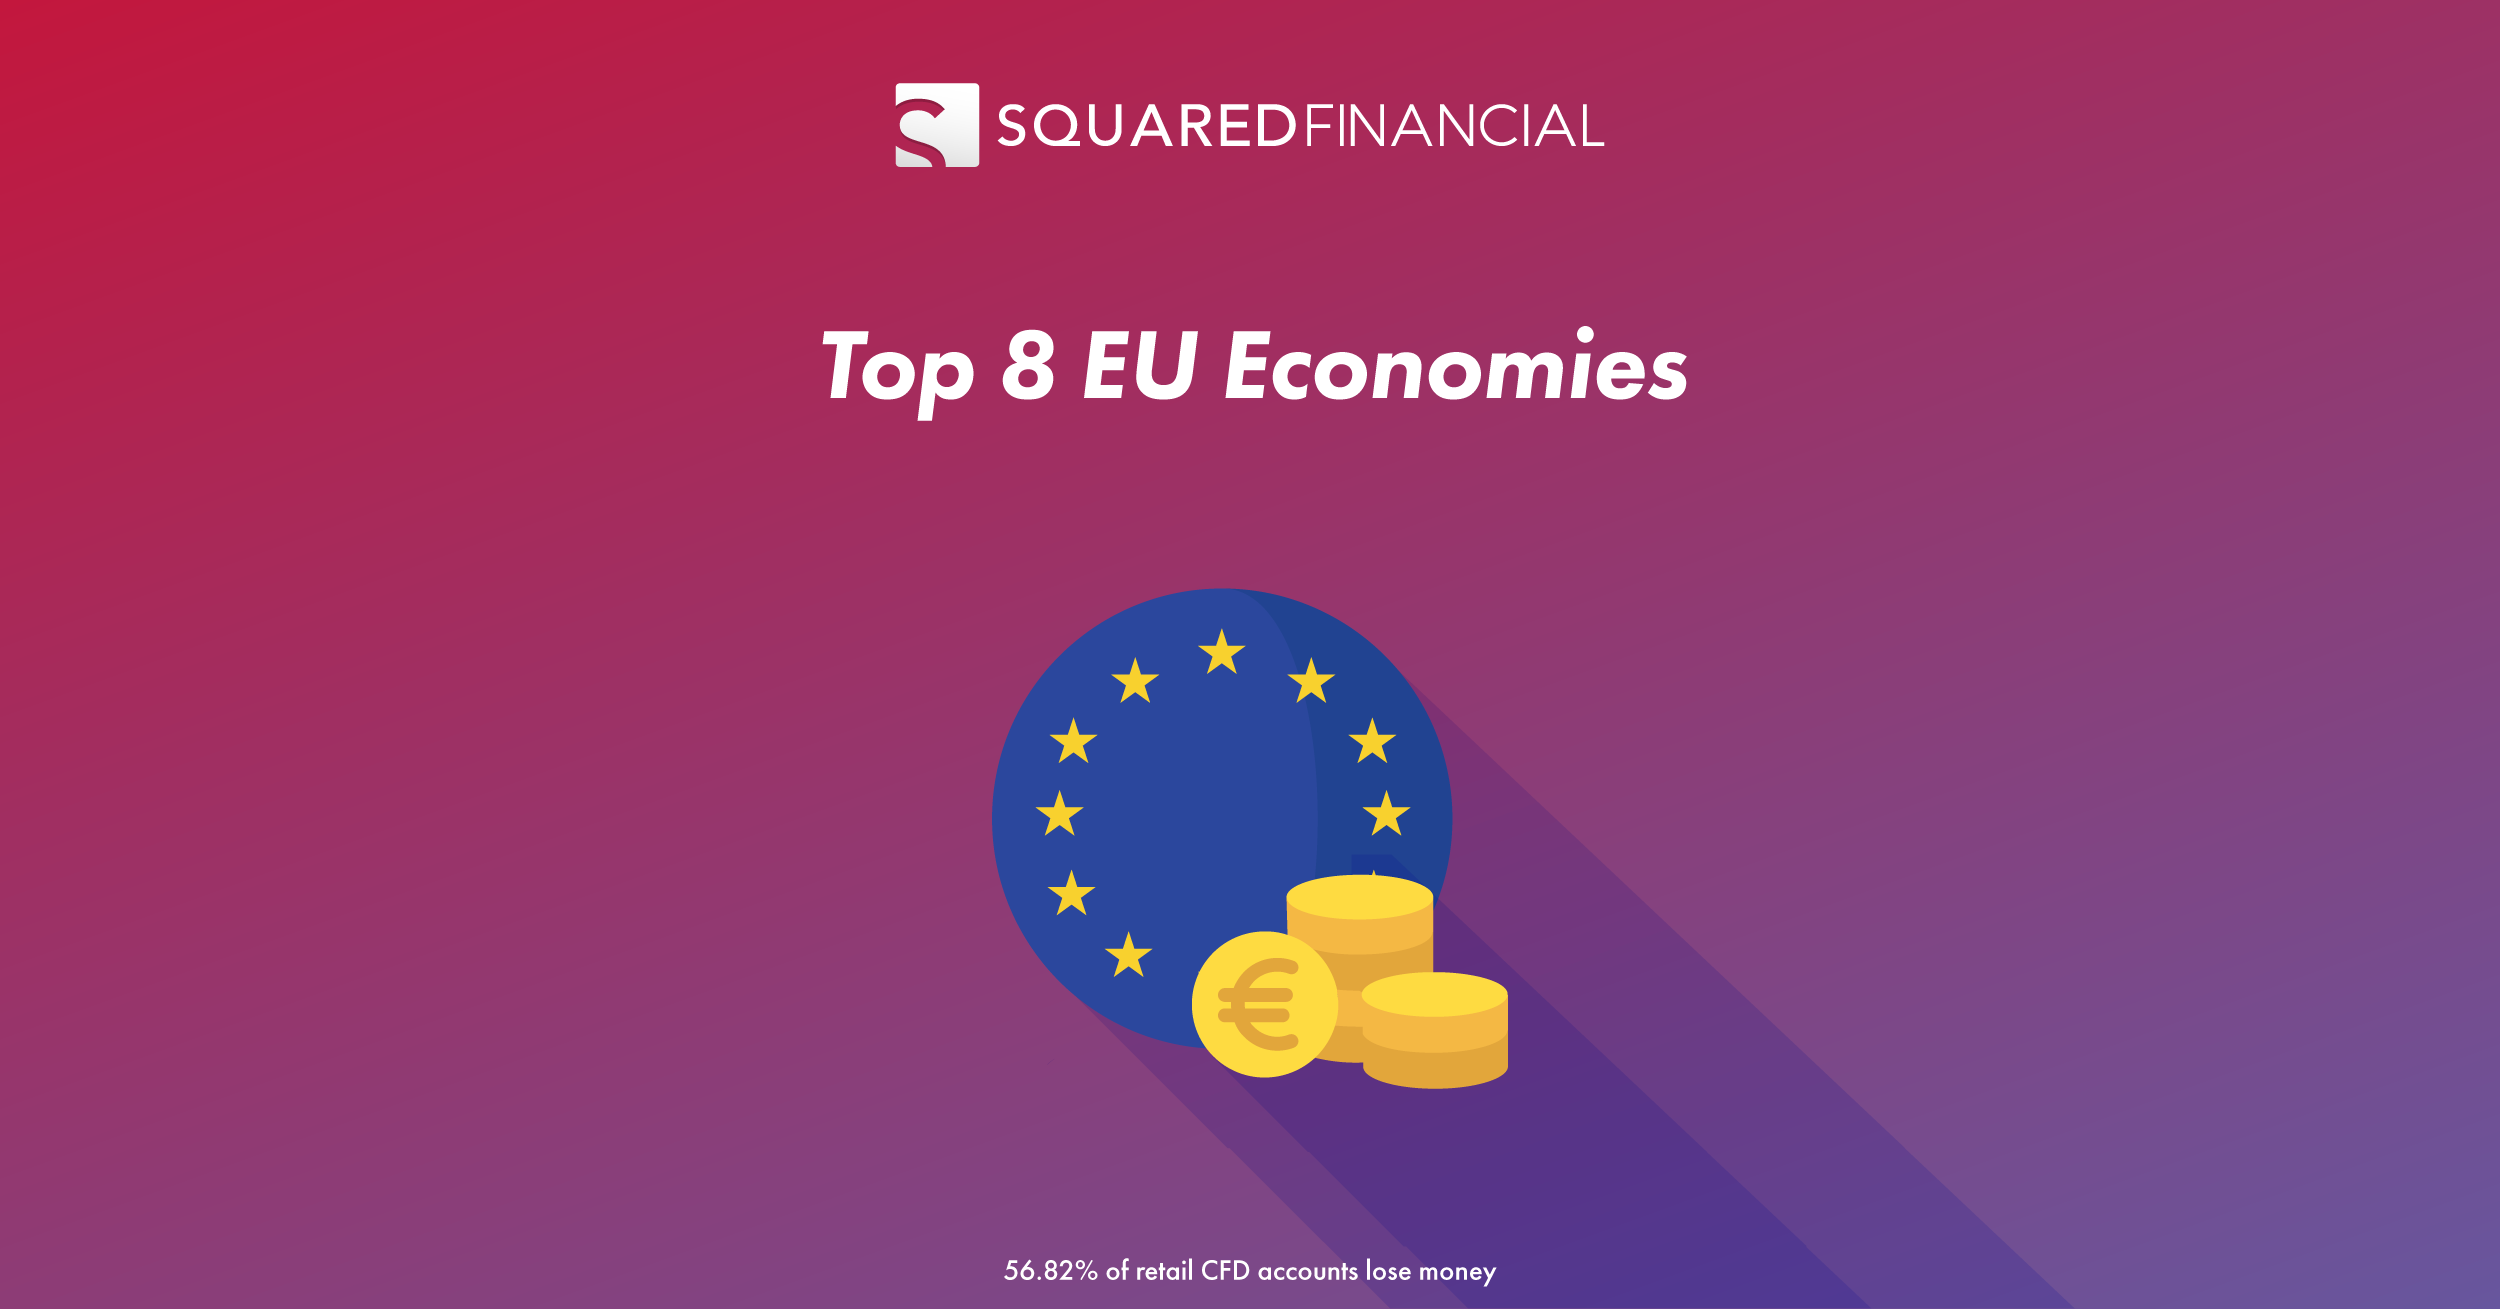 The 8 Strongest Economies in the EU Based on GDP